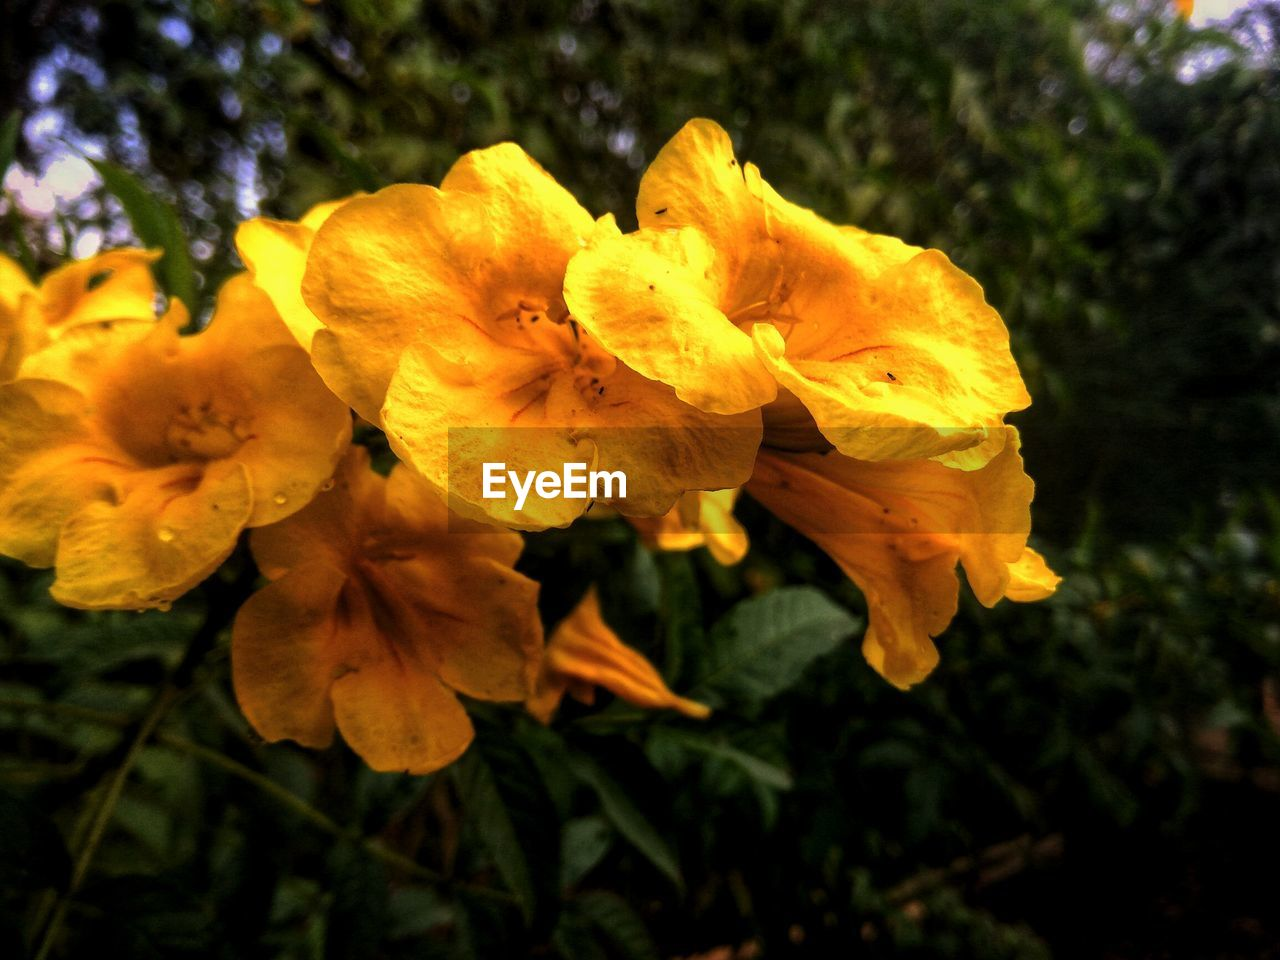 CLOSE-UP VIEW OF YELLOW FLOWER